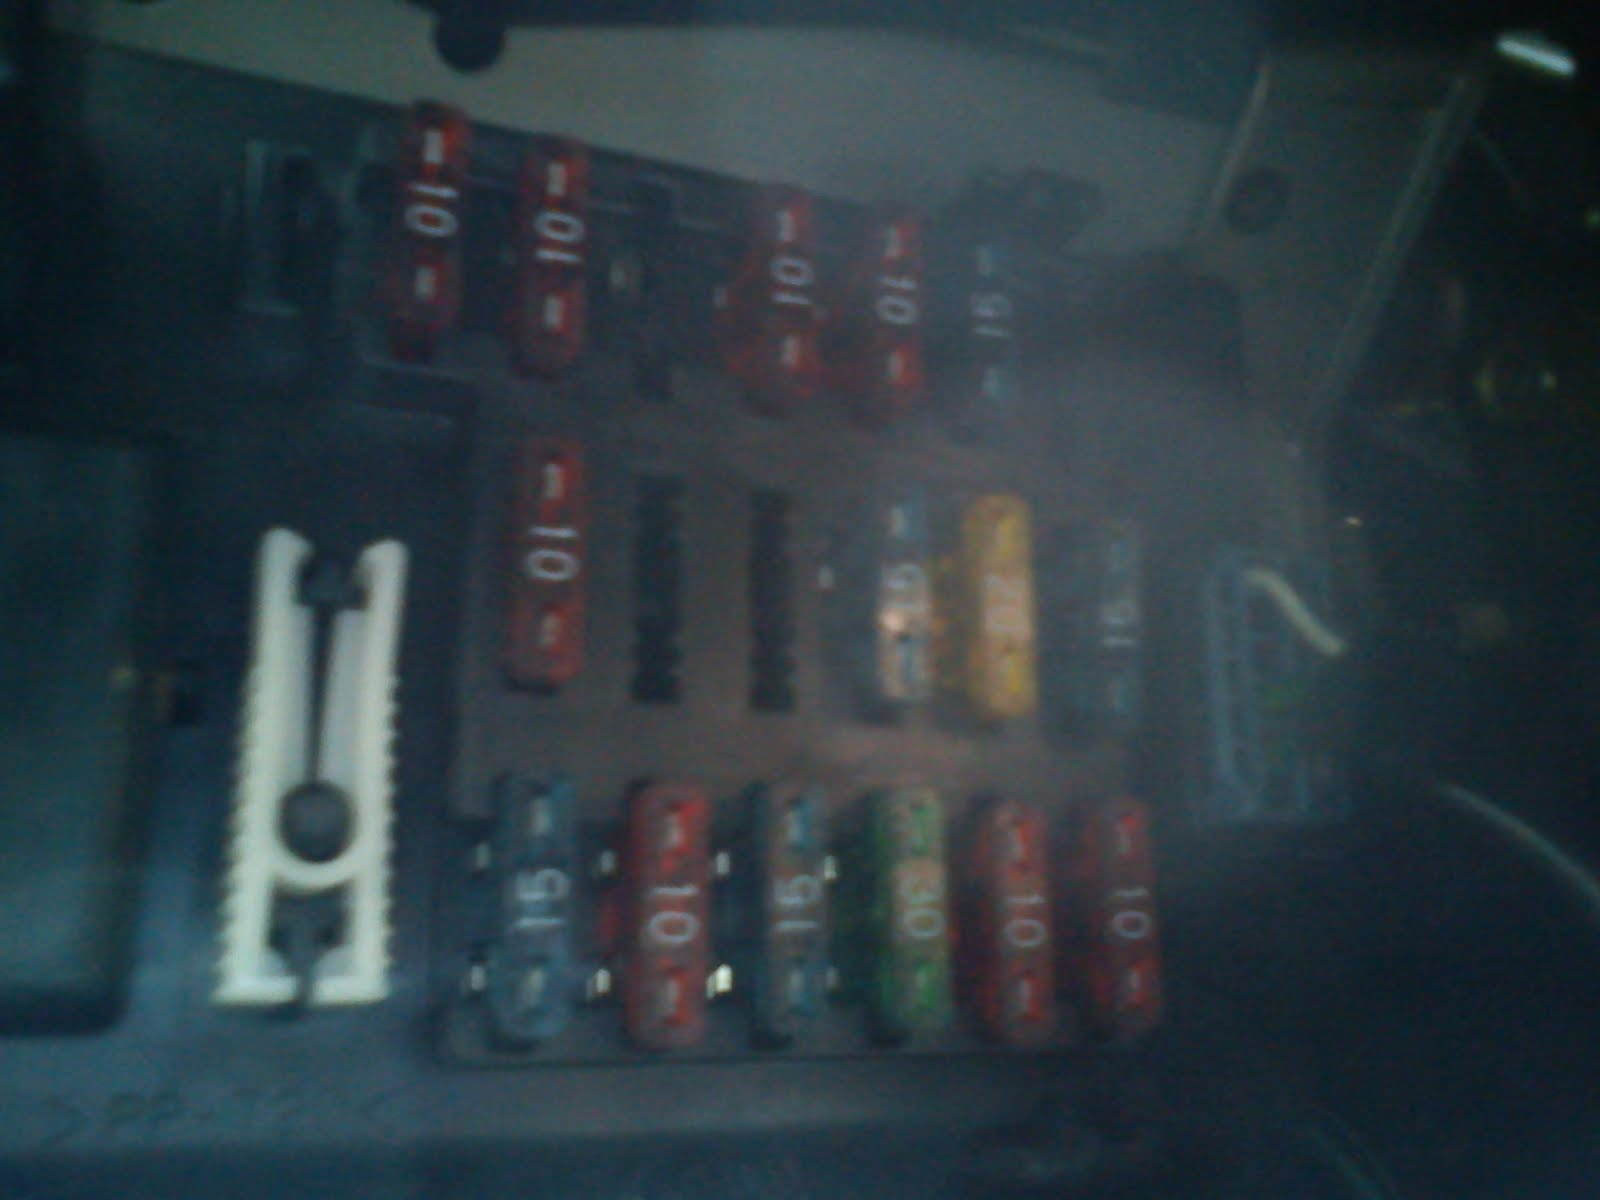 small resolution of fuse box kancil 850 wiring library7 susunan di dalam kotak fius